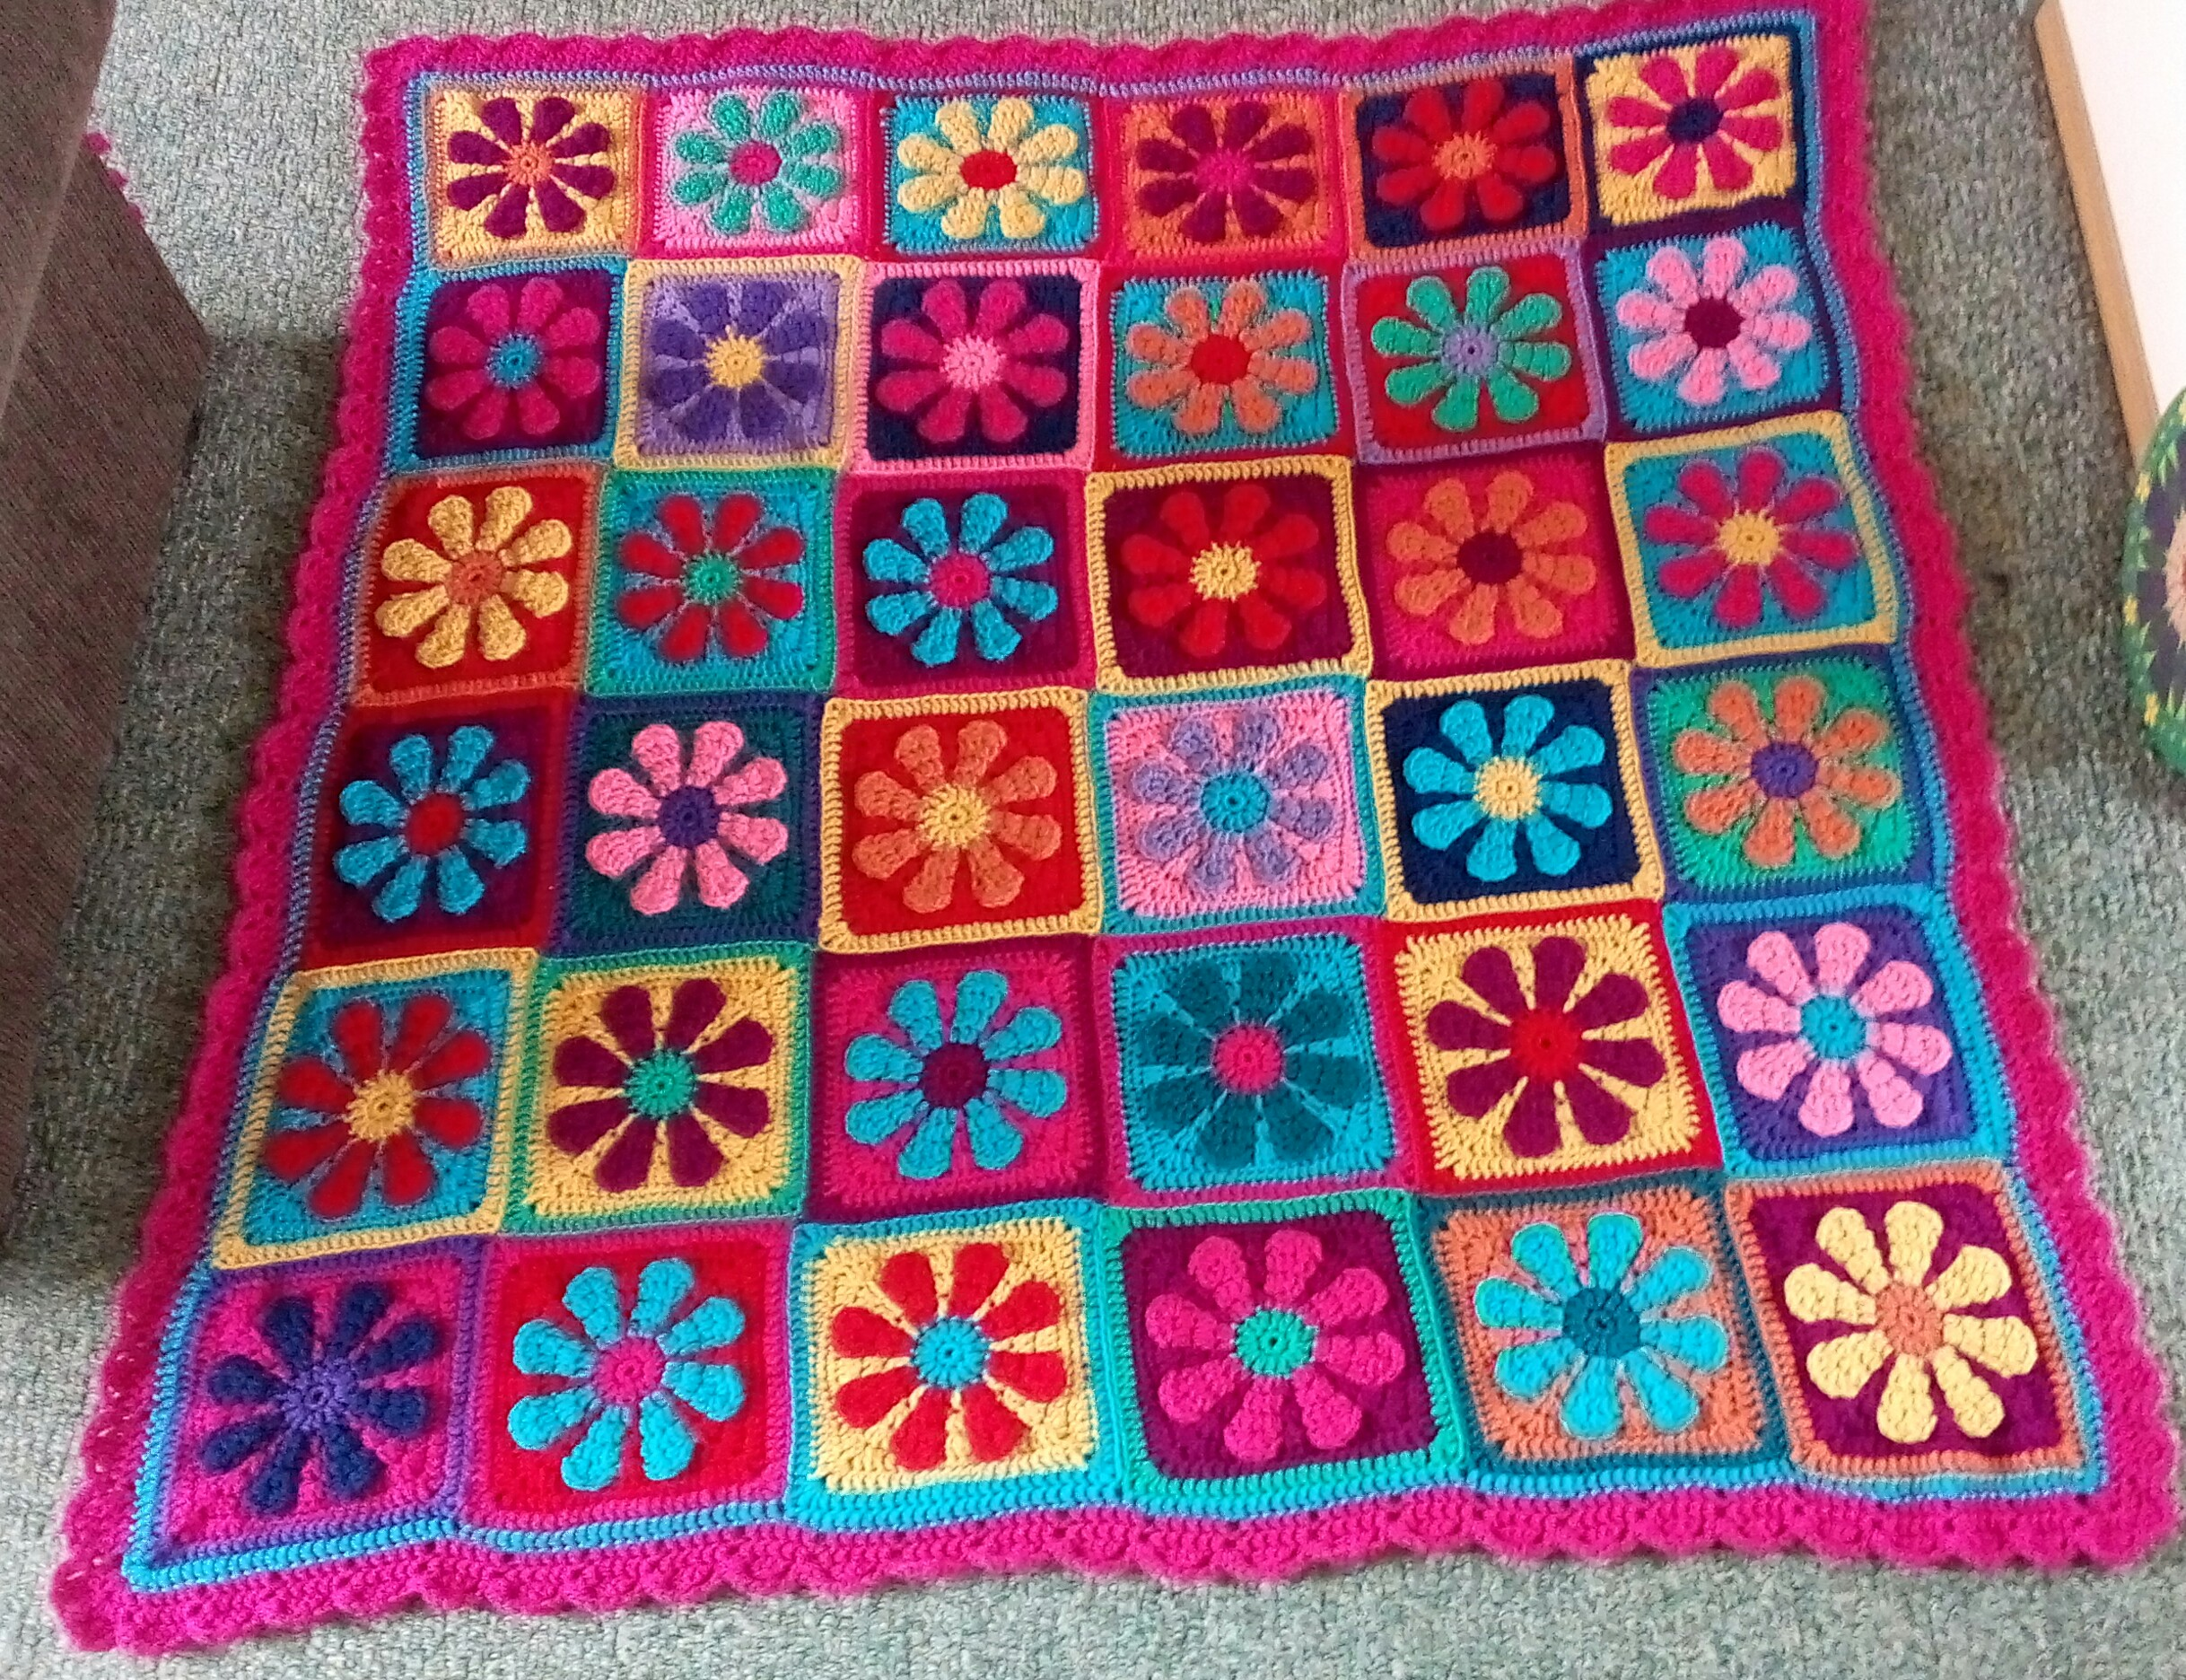 daisyblanketfinished3